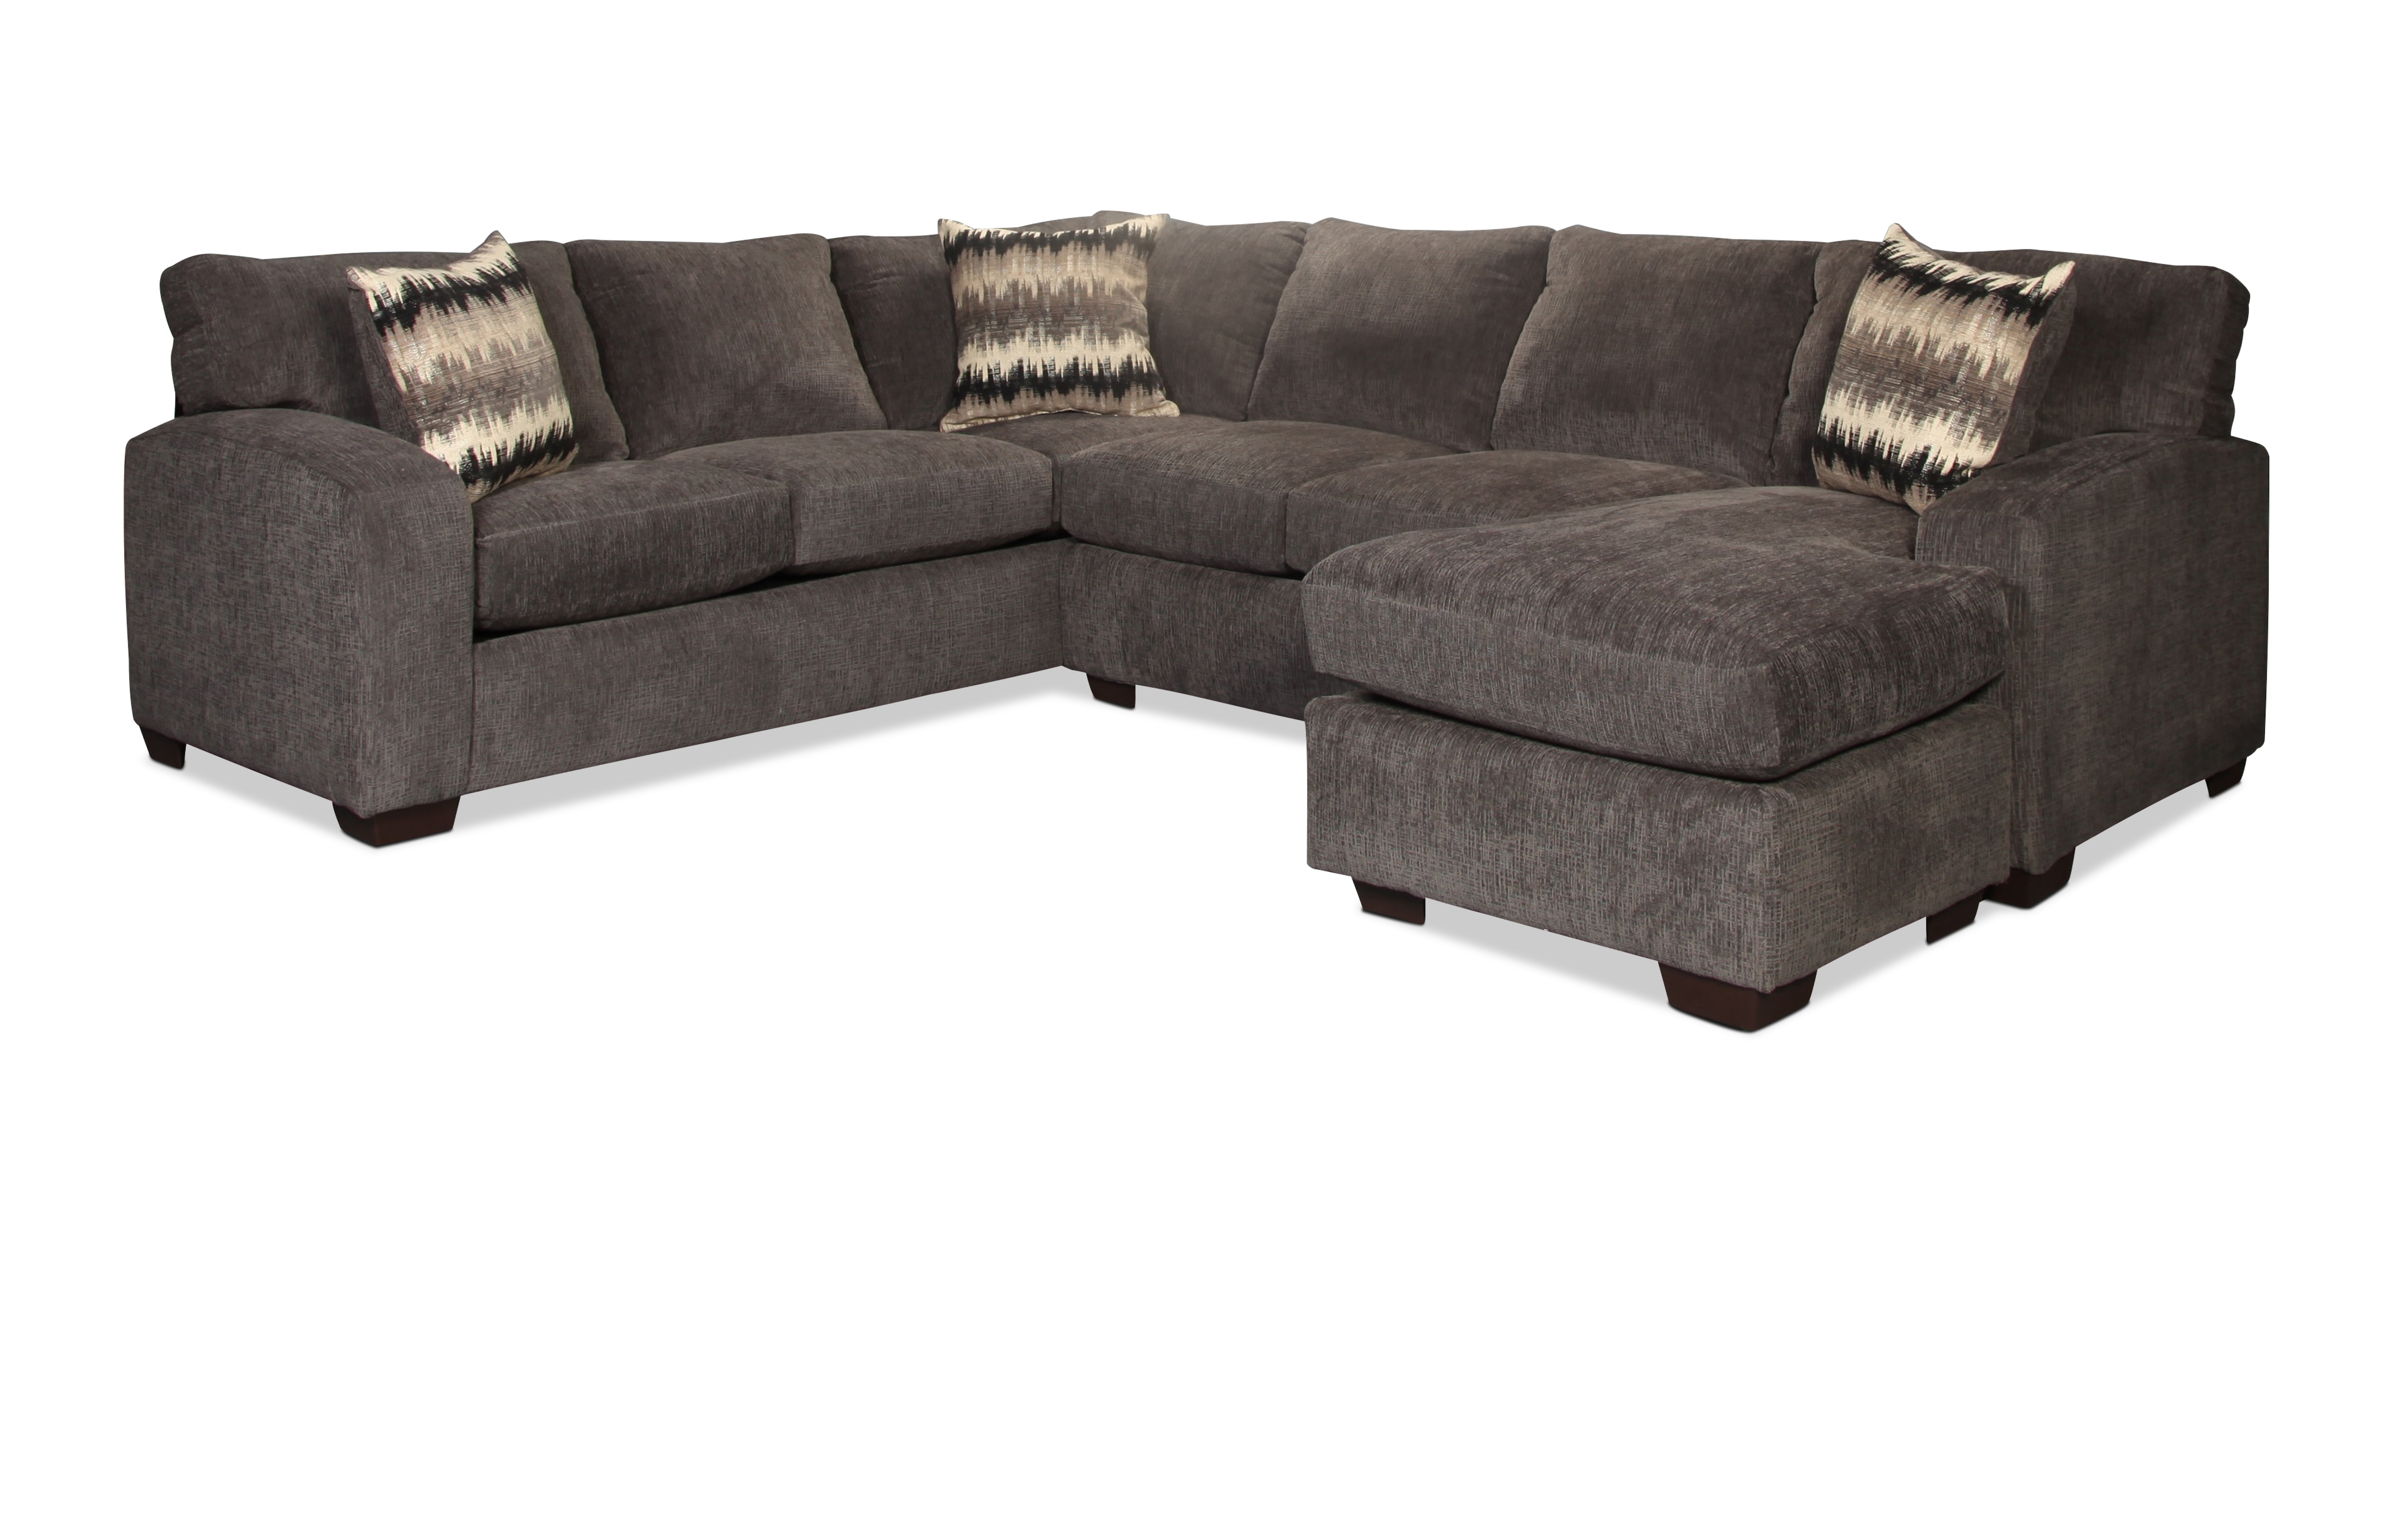 Fenella 2-Piece Right-Facing Sectional - Smoke